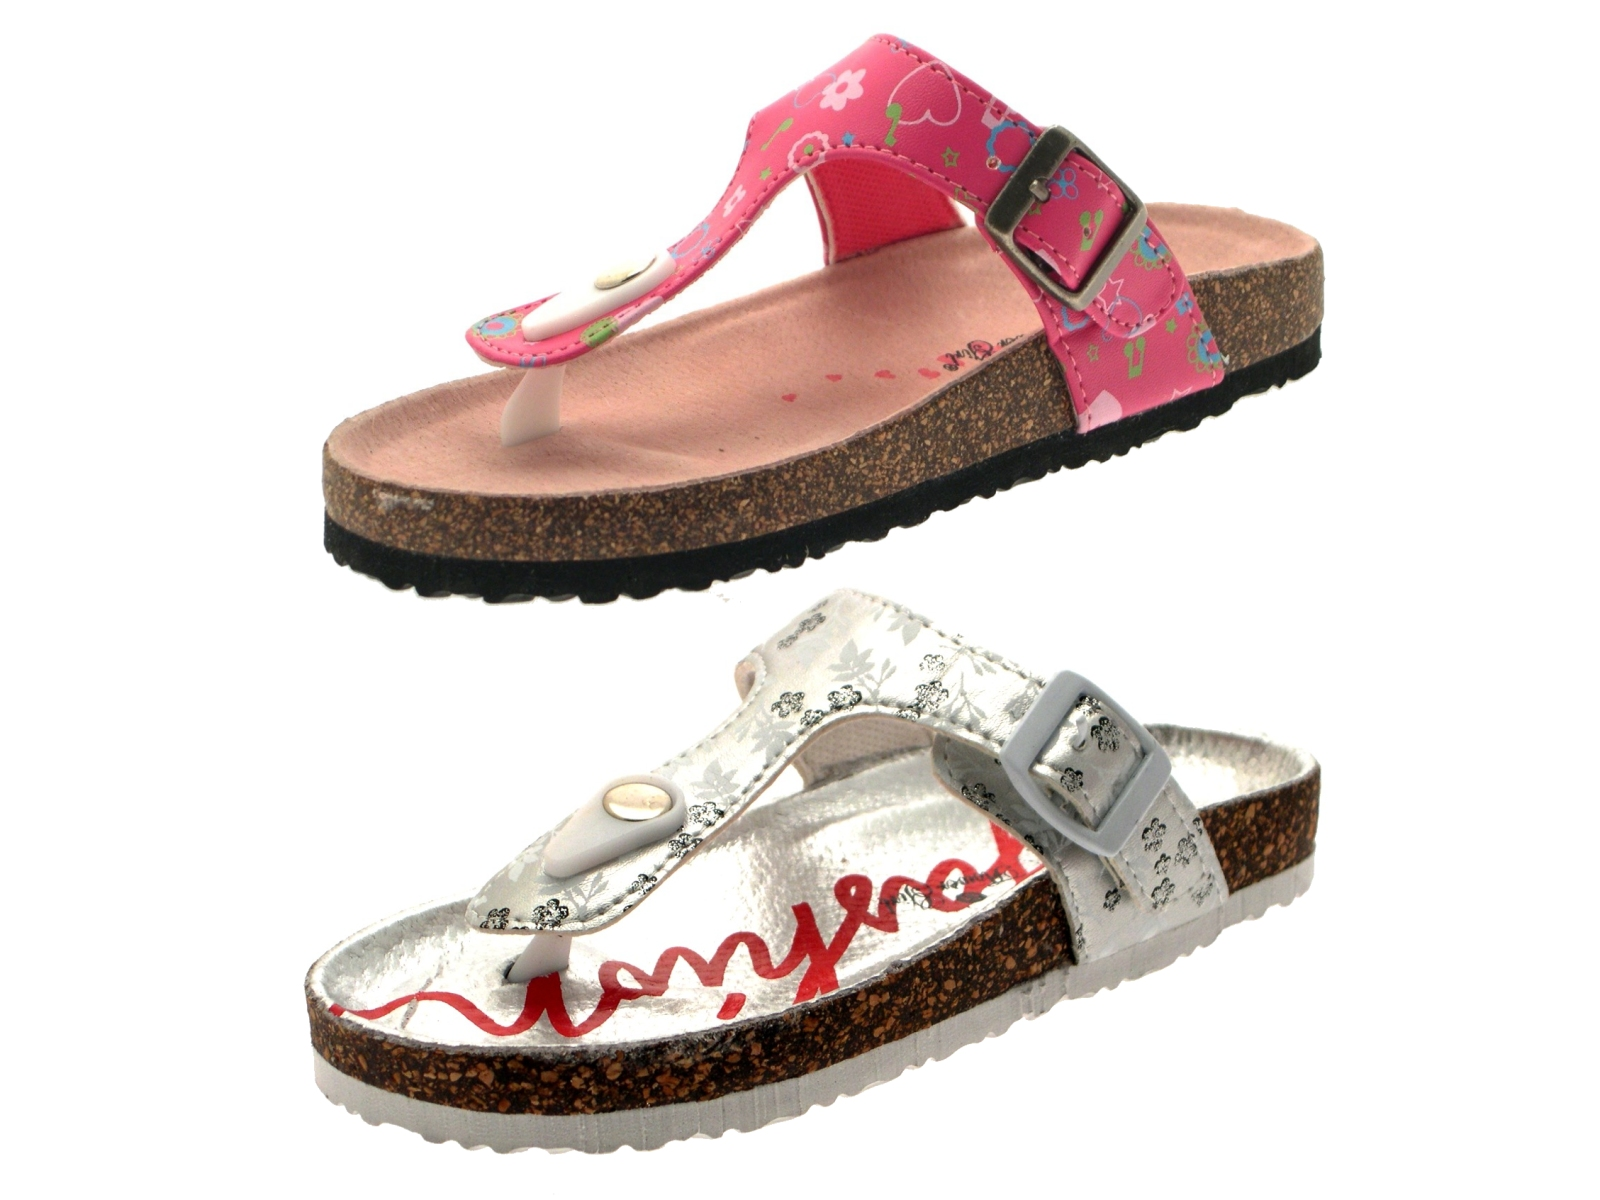 fef720699 Girls Summer Sandals Iridescent Footbed Mules Holographic Comfort ...